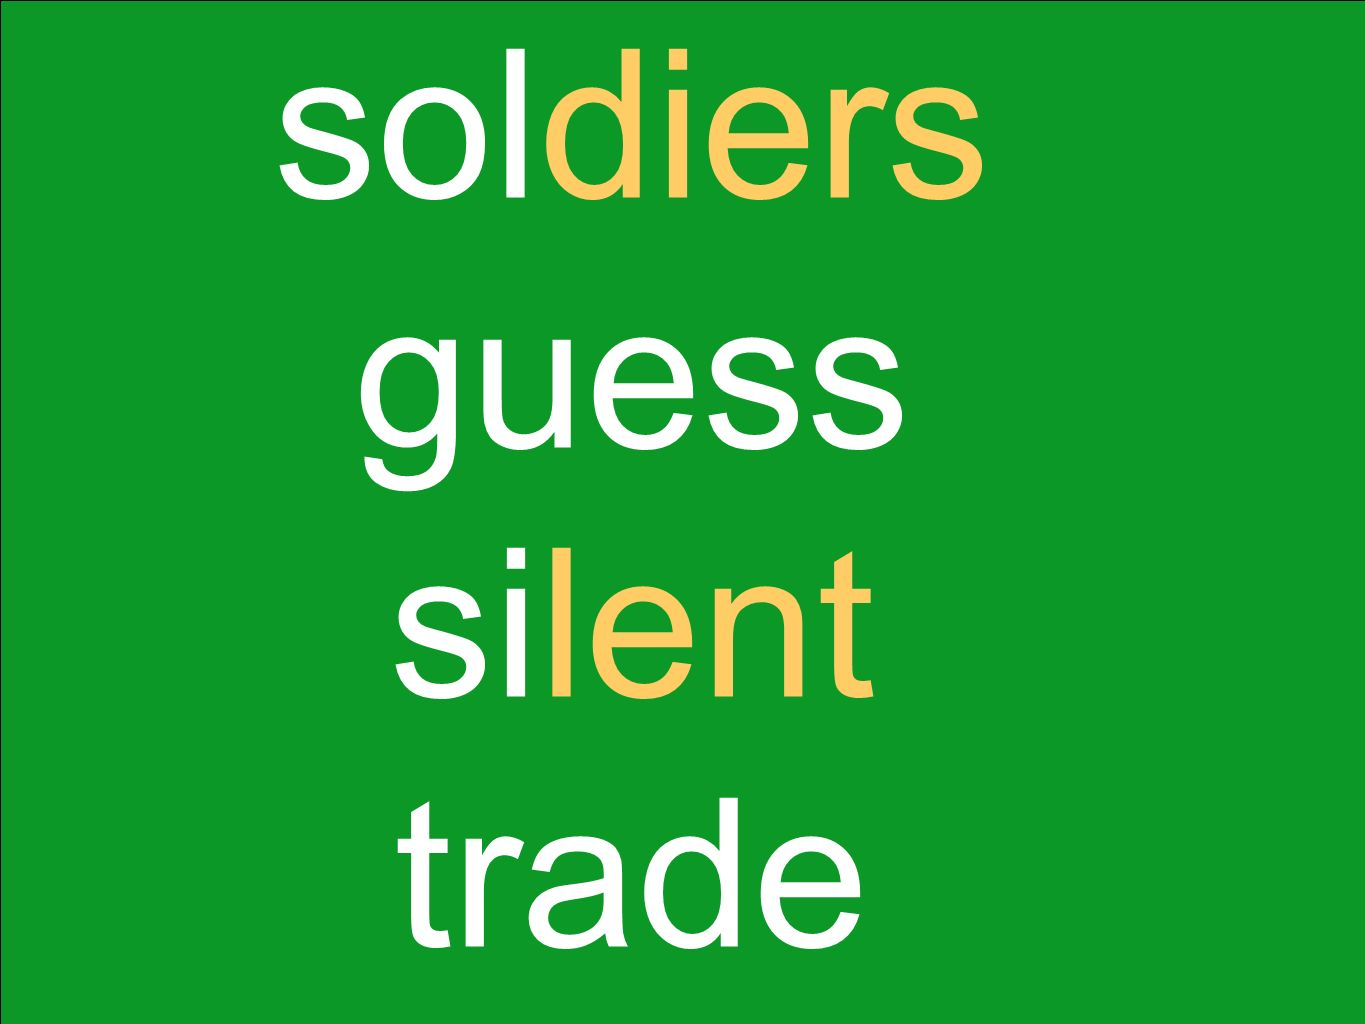 soldiers guess silent trade